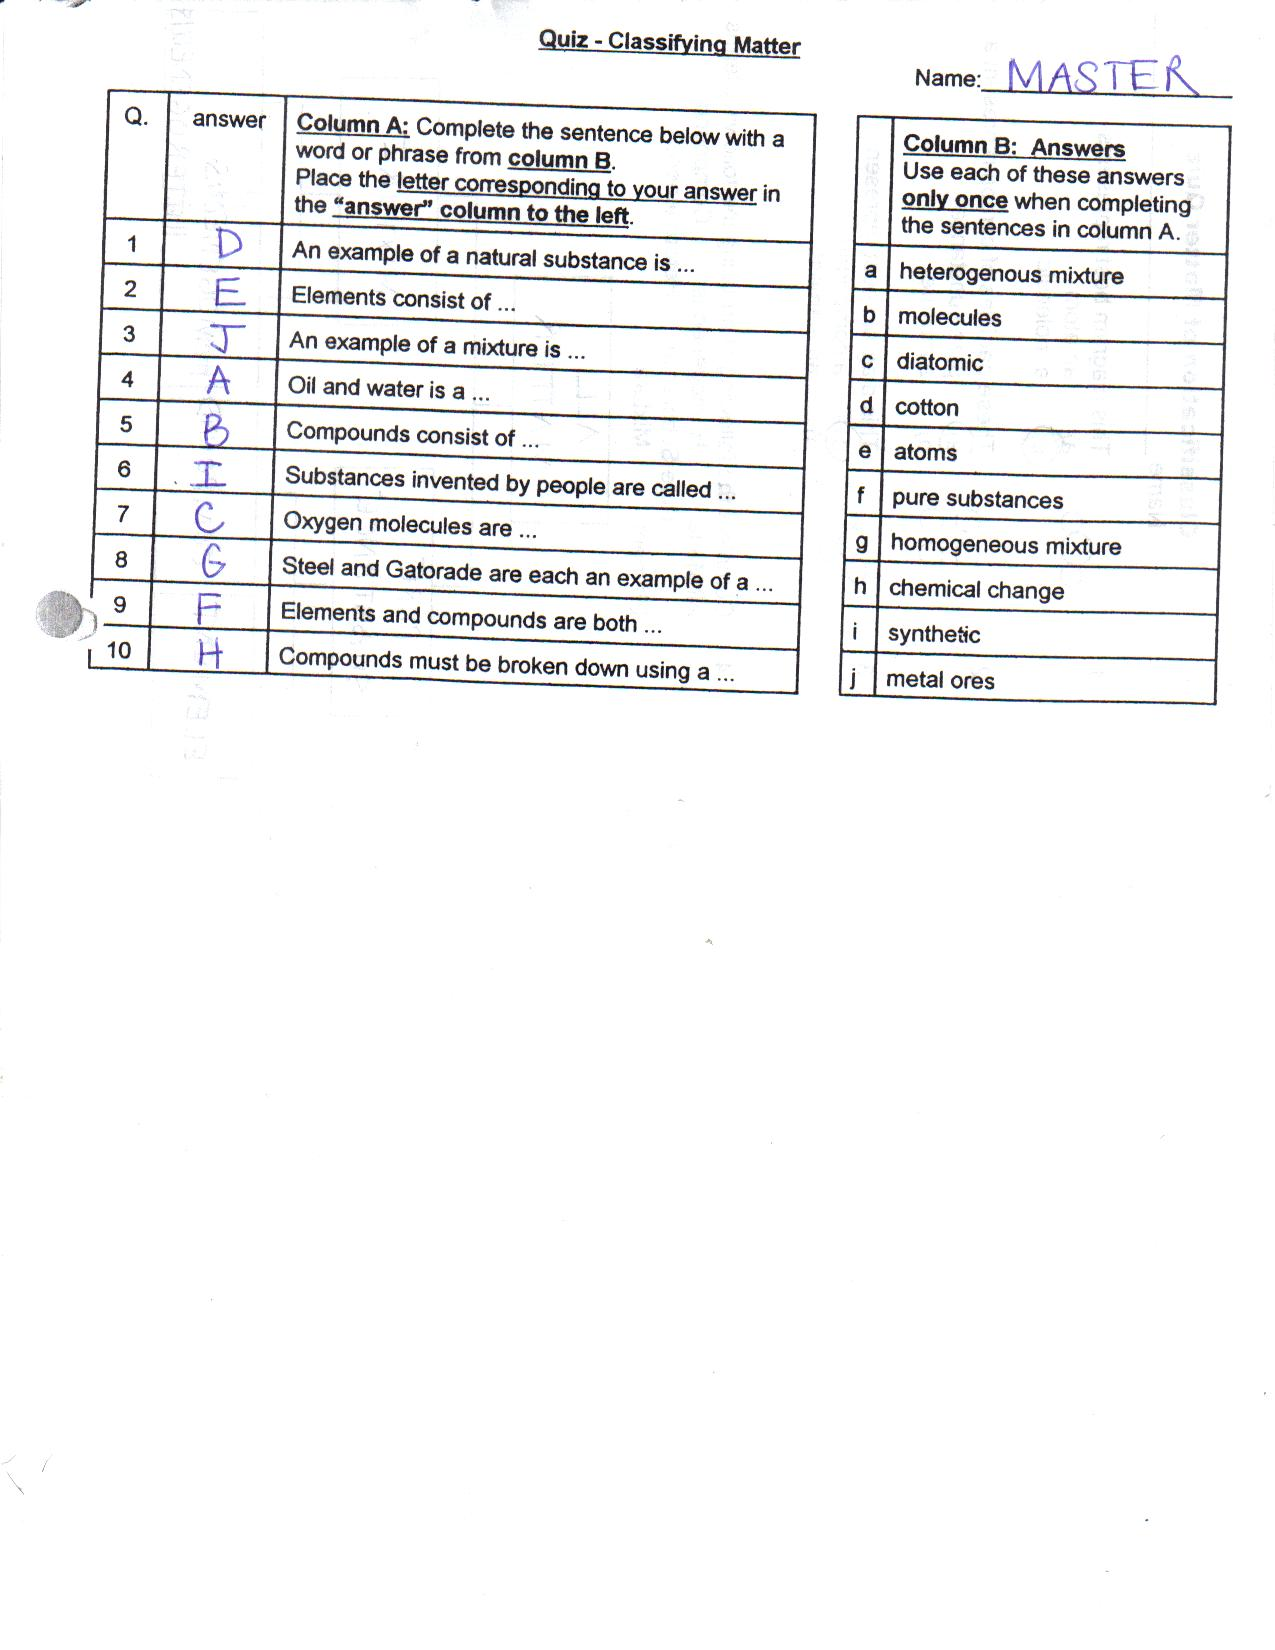 Bill Nye Static Electricity Video Worksheet Answer Key